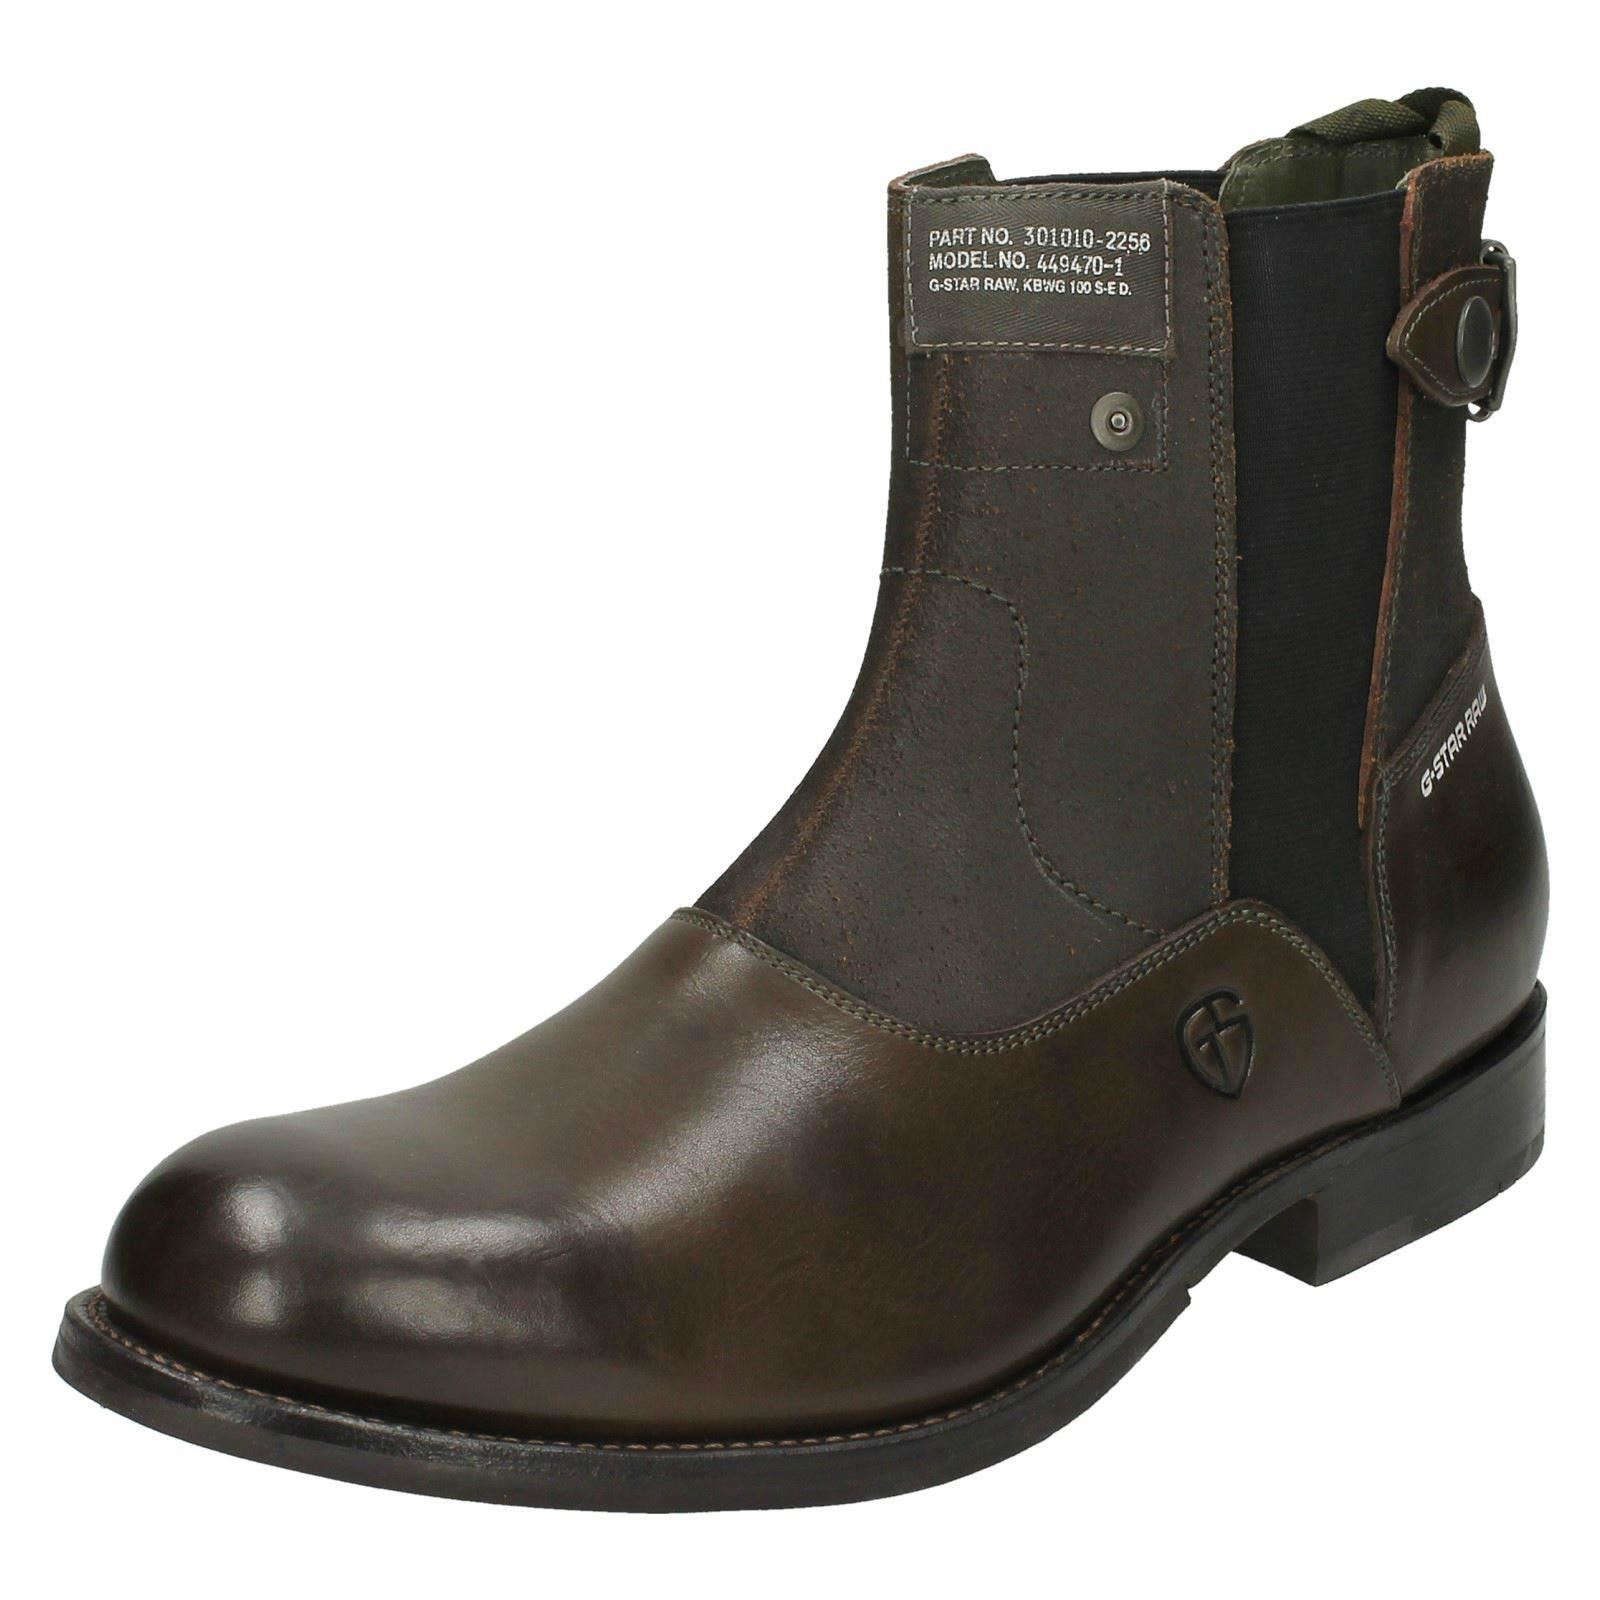 mens g star raw ankle boots attache. Black Bedroom Furniture Sets. Home Design Ideas